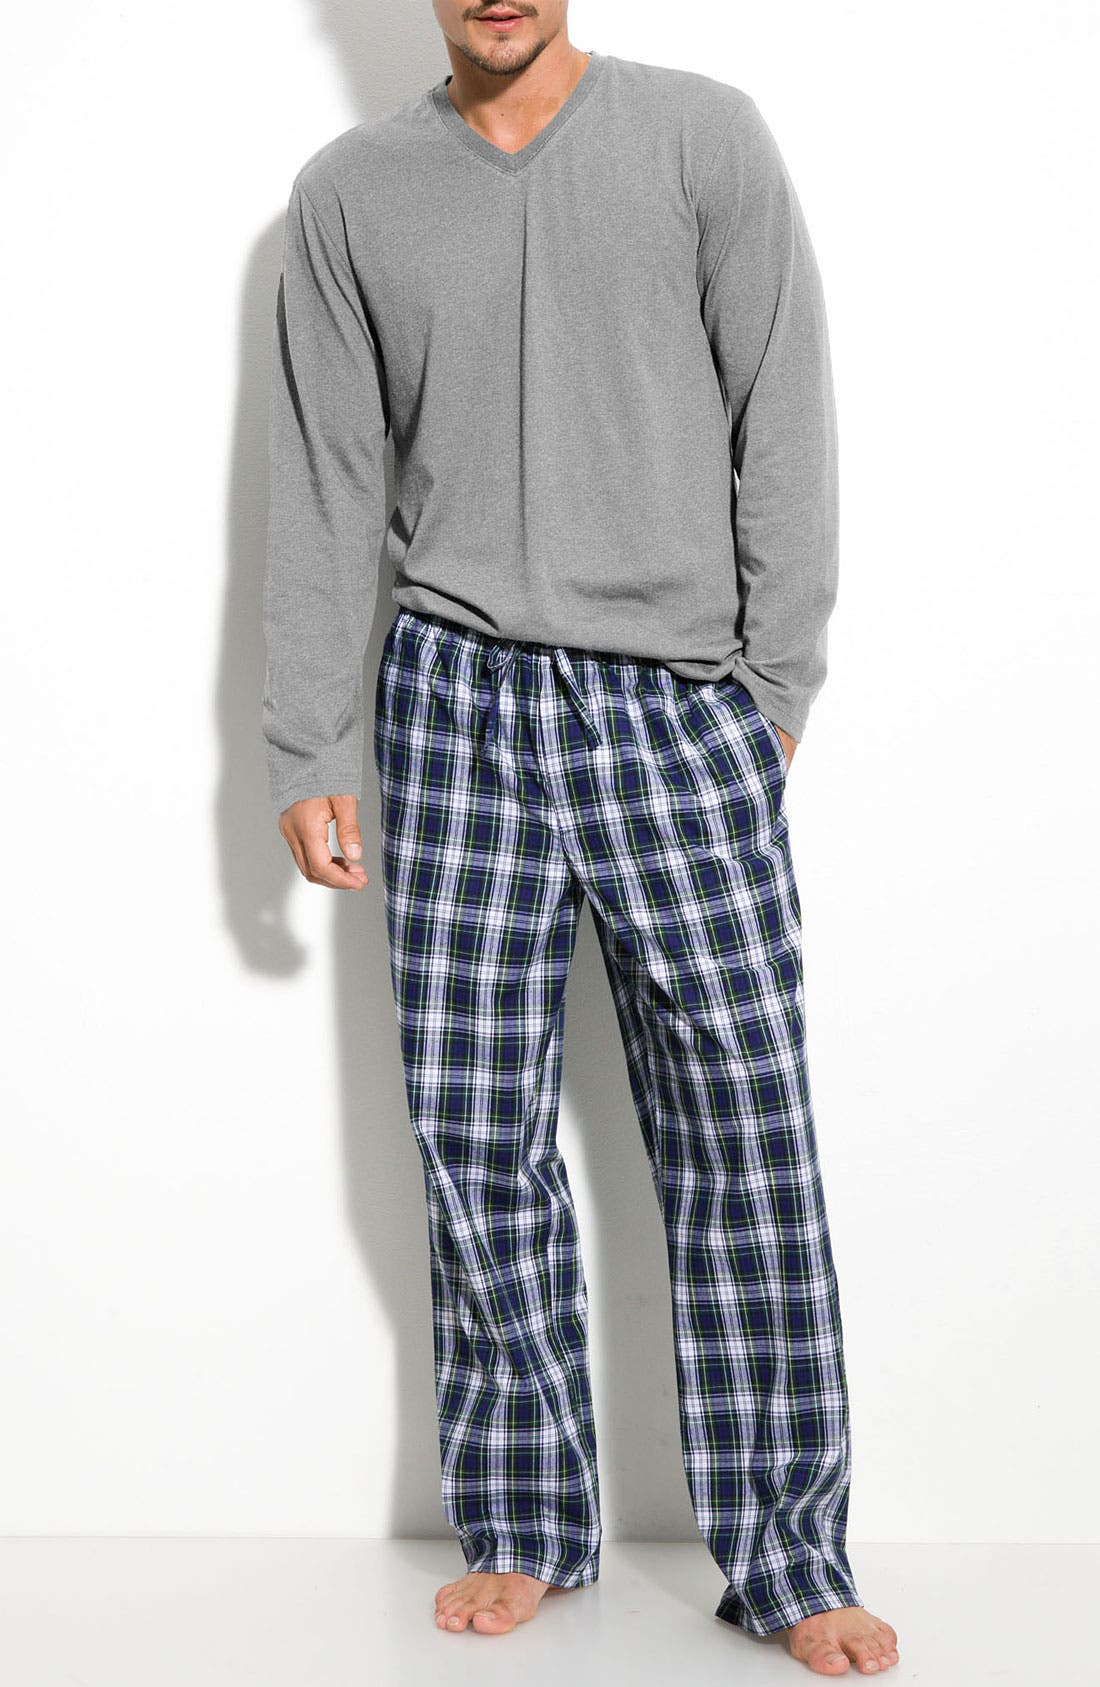 Main Image - Nordstrom Men's Shop Pajama Set